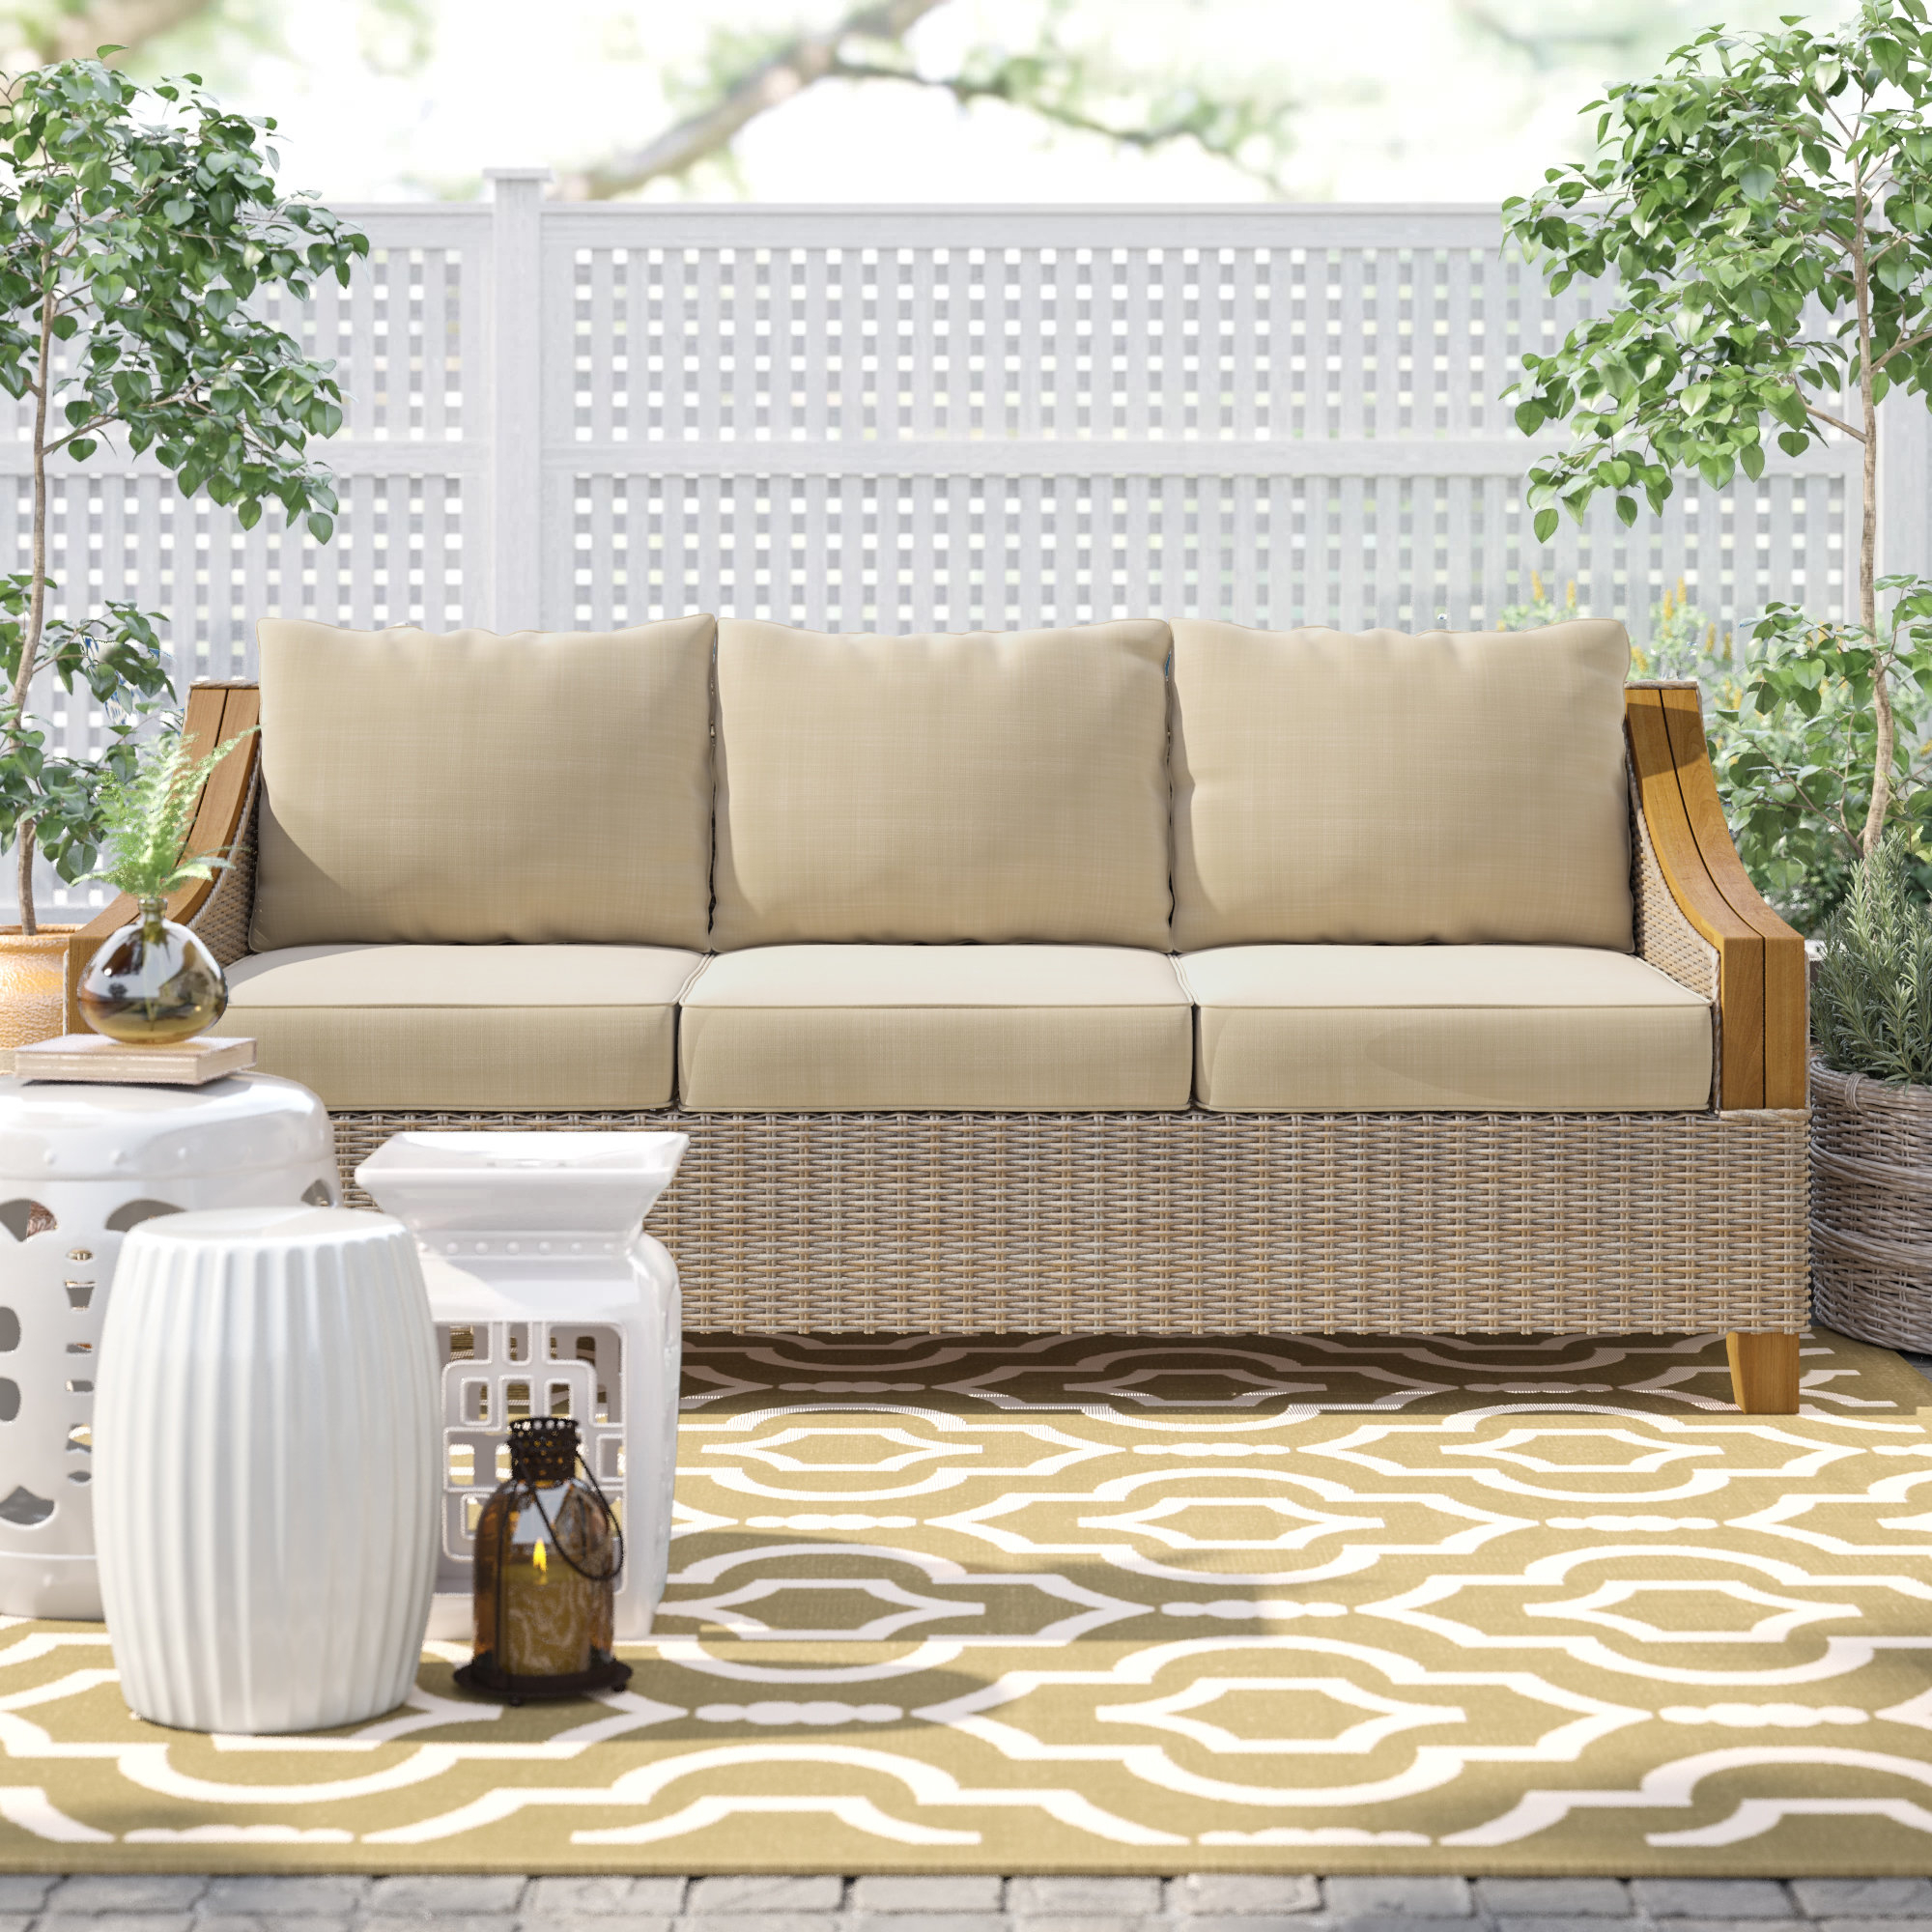 Kincaid Teak Patio Sofa With Sunbrella Cushions Inside Well Known Montford Teak Patio Sofas With Cushions (View 8 of 20)